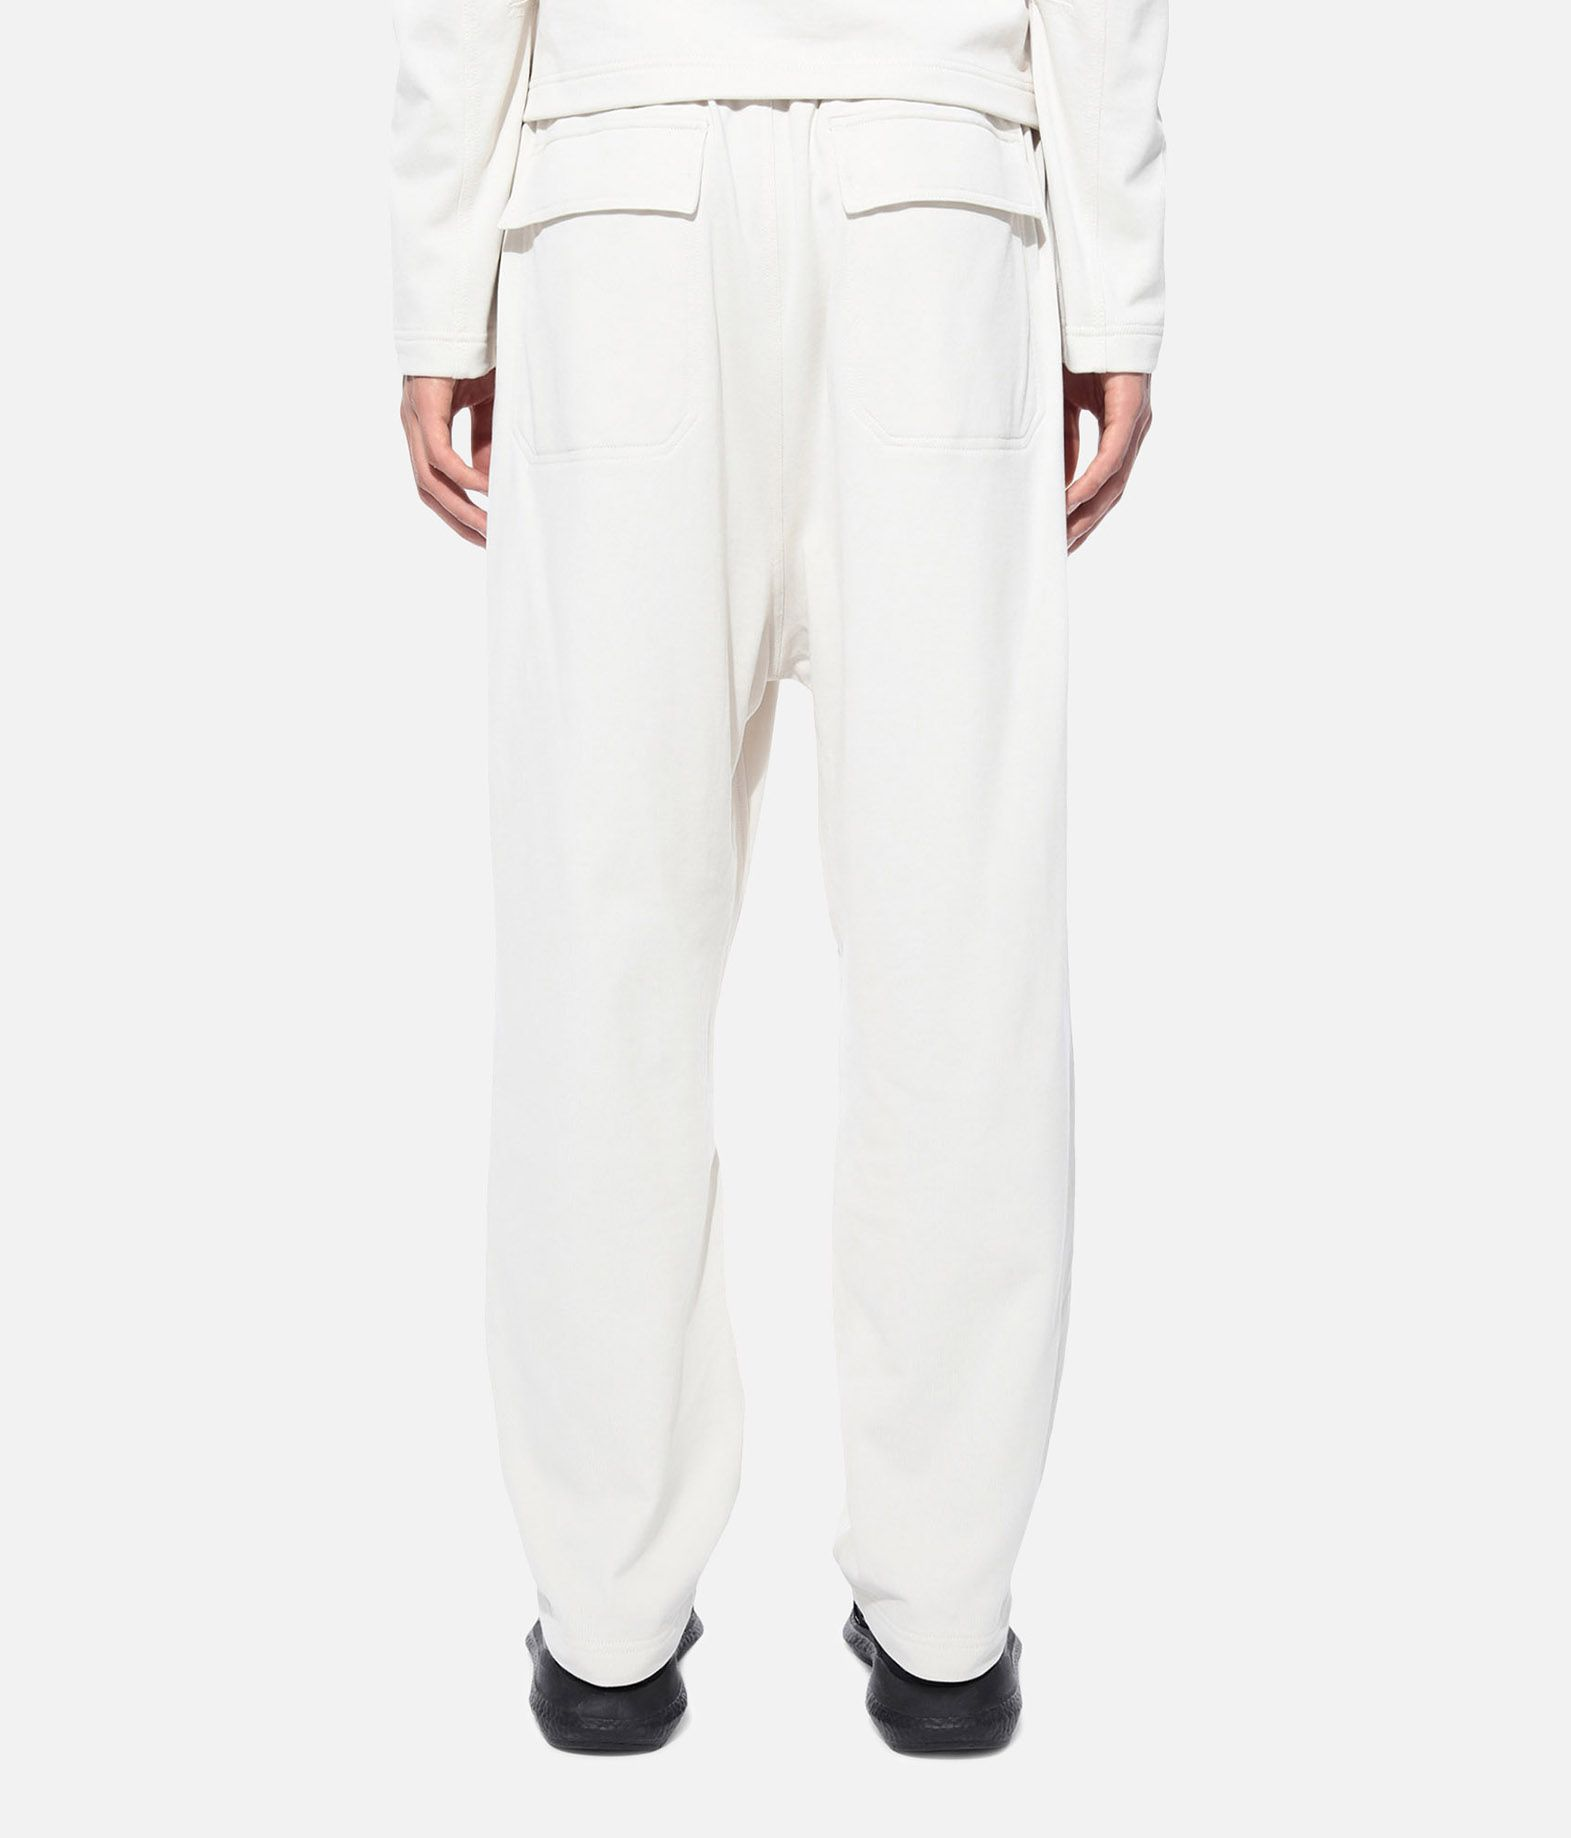 Y-3 Y-3 Sashiko Pants Sweatpants Man d